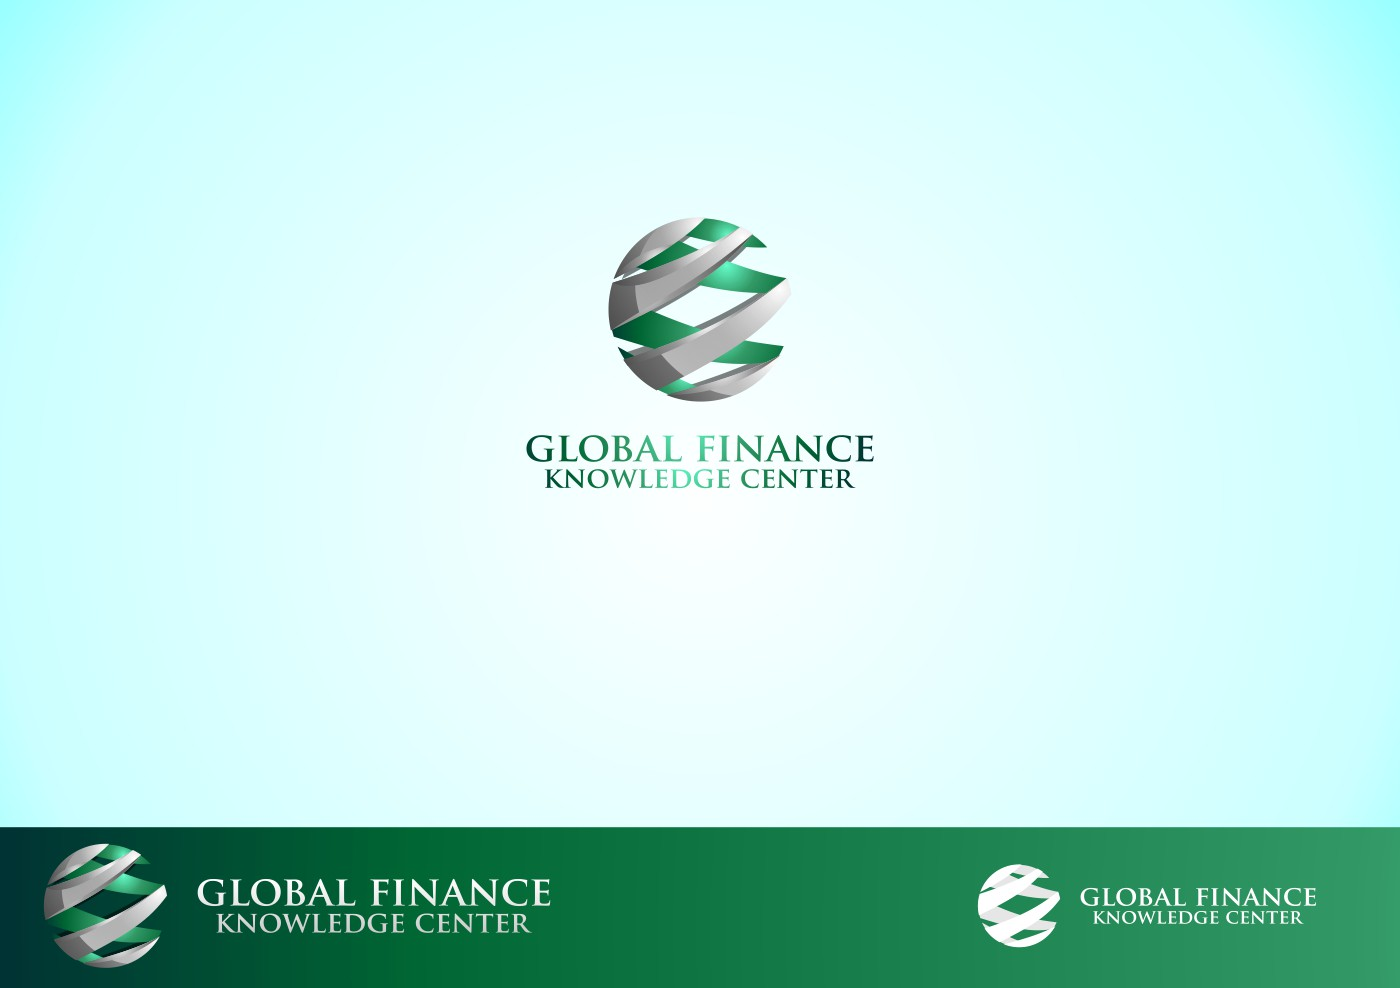 Global Finance Knowledge Center  needs a new logo